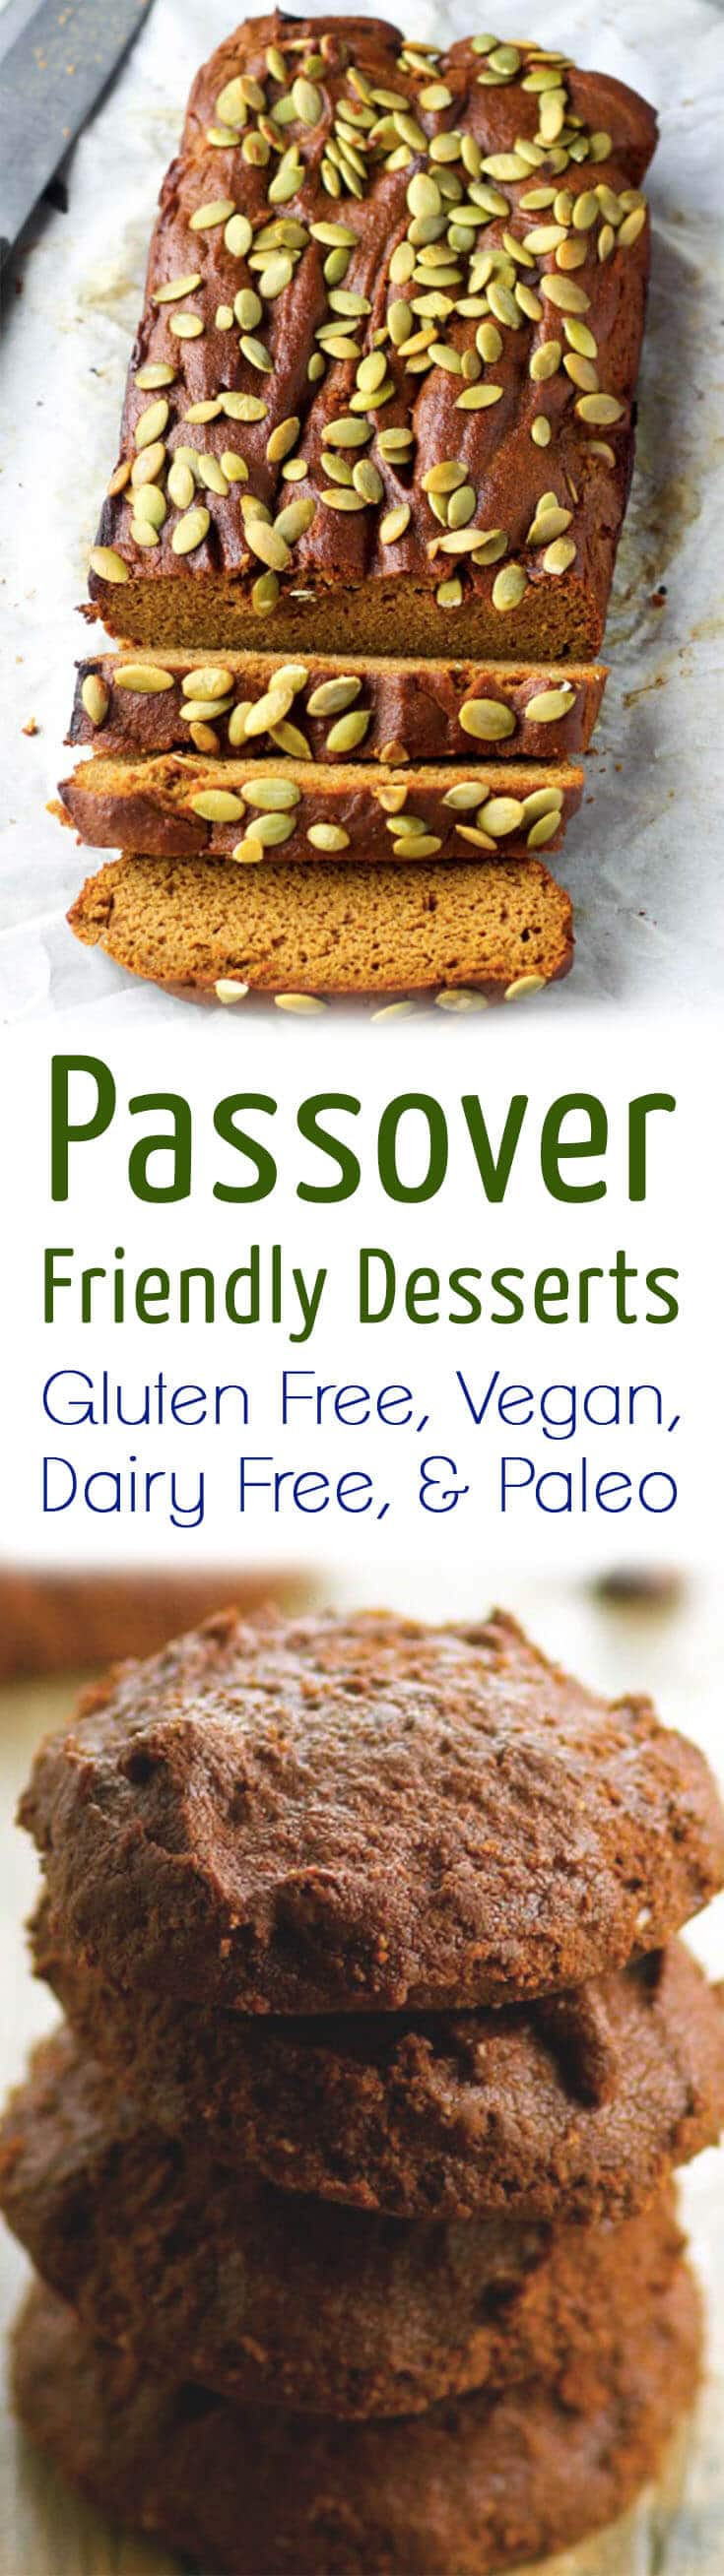 Vegan Passover Dessert Recipes  30 Passover Friendly Desserts